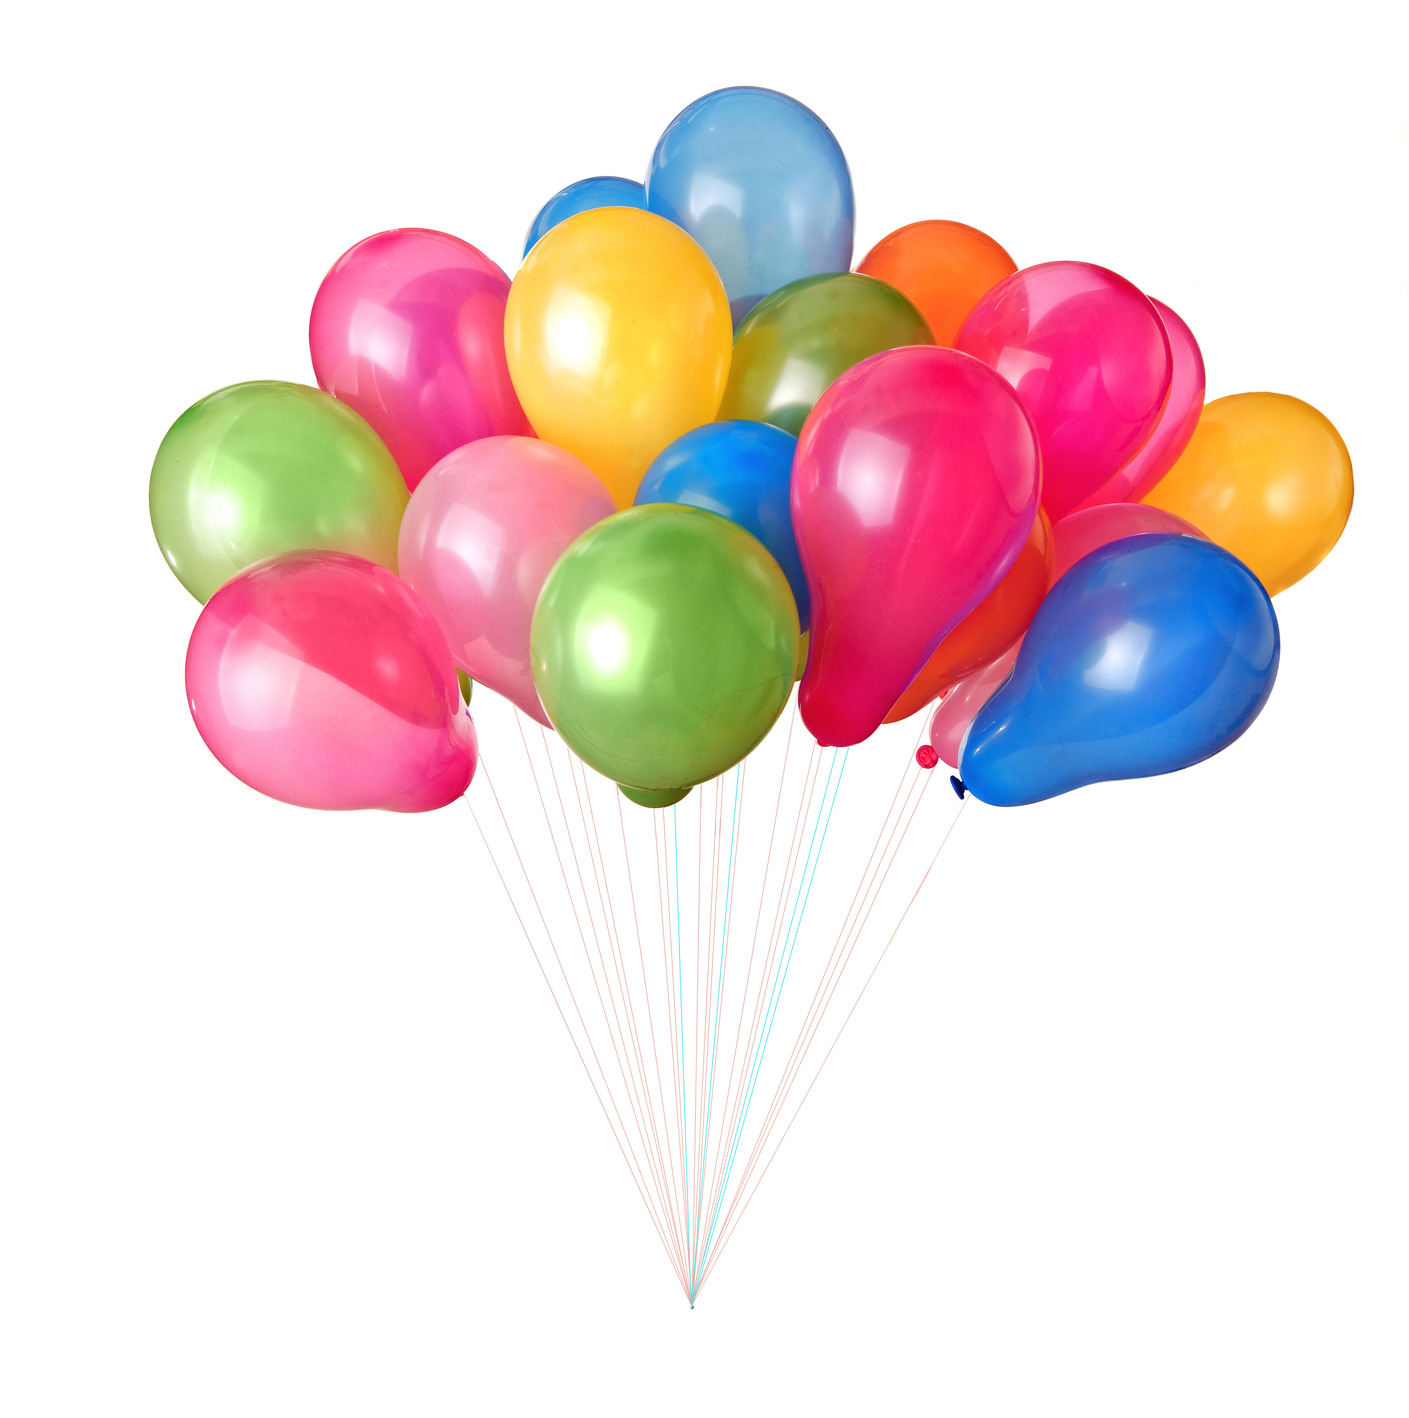 photodune-1037670-color-balloons-isolated-on-white-m